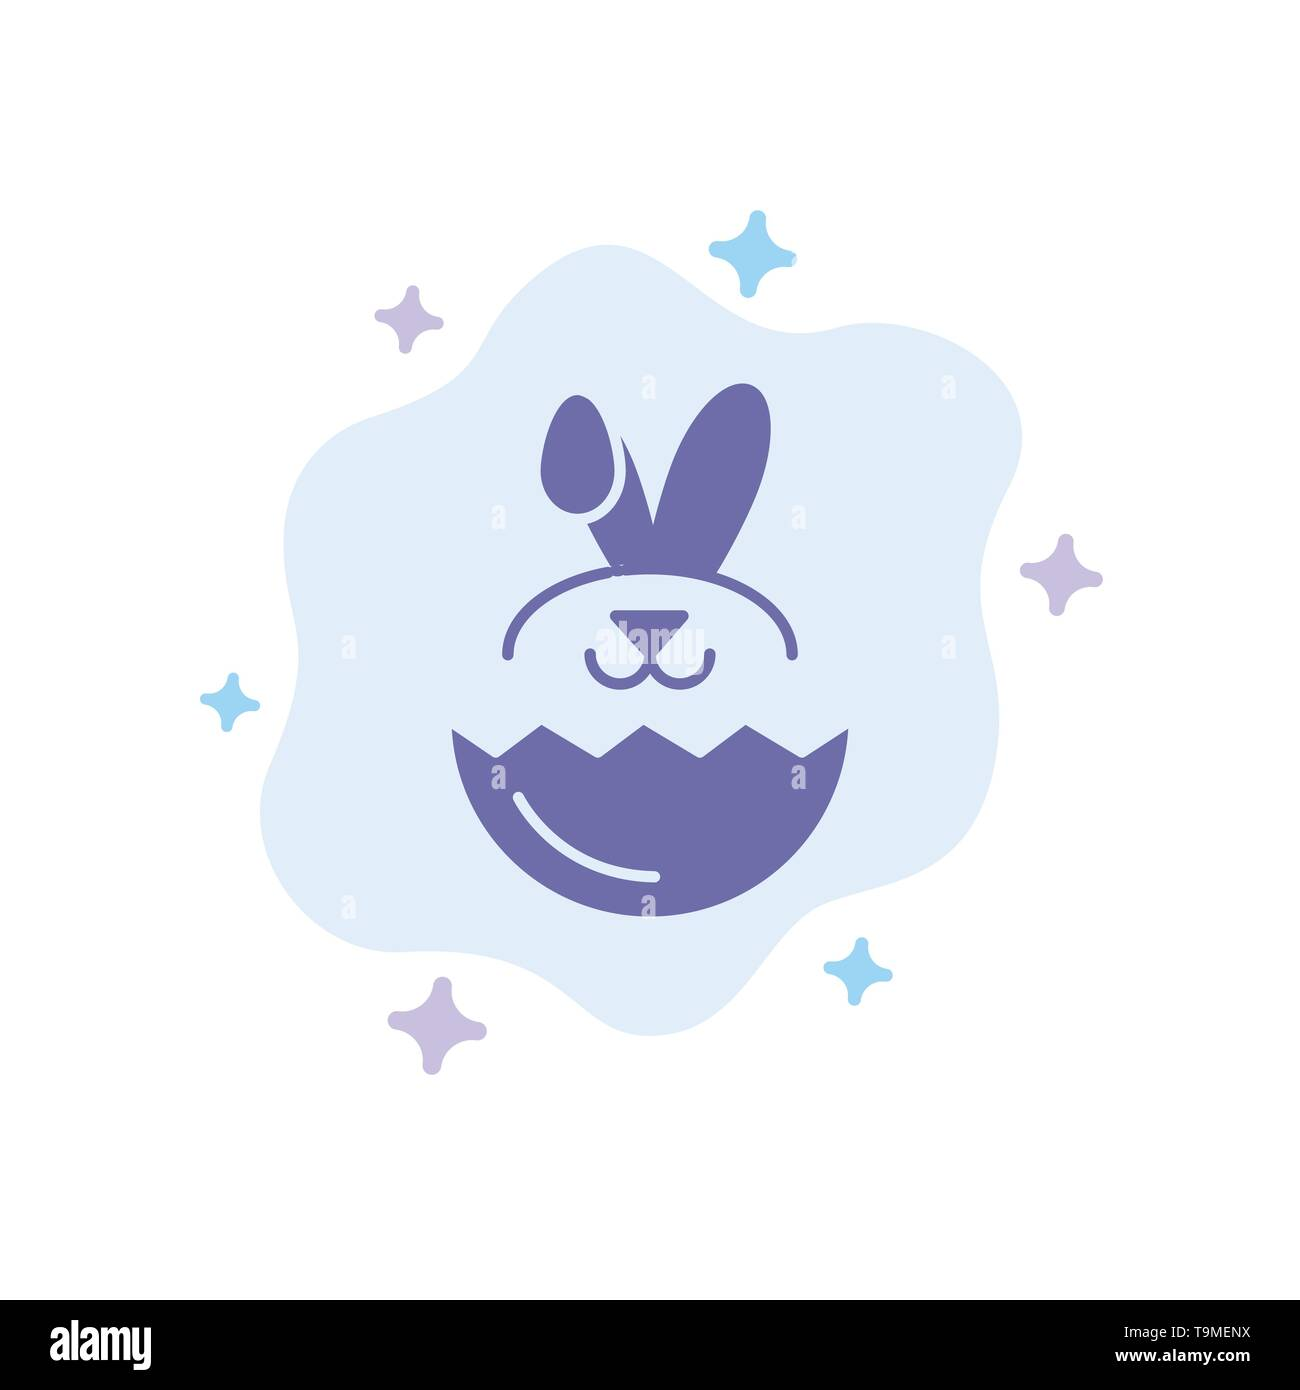 Egg, Rabbit, Easter Blue Icon on Abstract Cloud Background - Stock Image